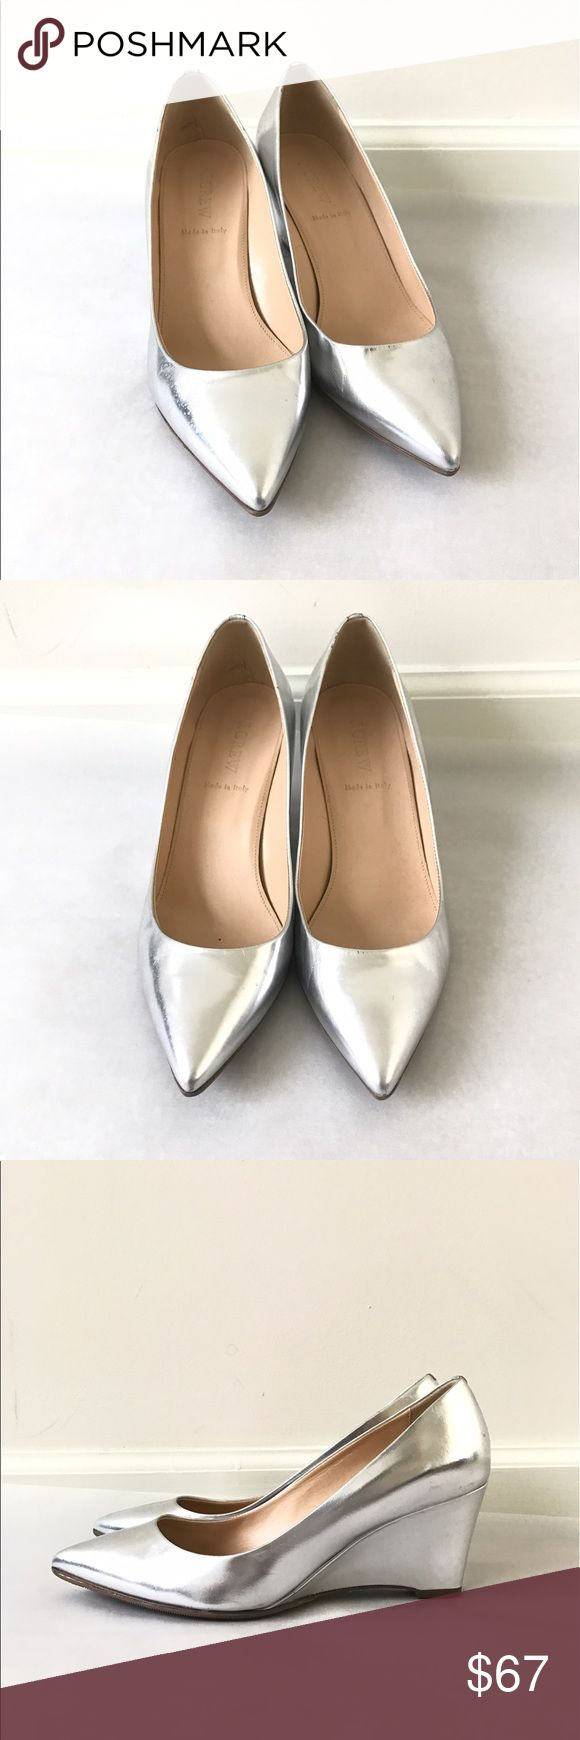 J. Crew Metallic Silver Wedge Pumps Made In Italy Gently worn , shows some wear in the heel parts but overall in good condition. Size 8.5 M . Made in Italy. Metallic Silver color. Resoled. J. Crew Shoes Wedges